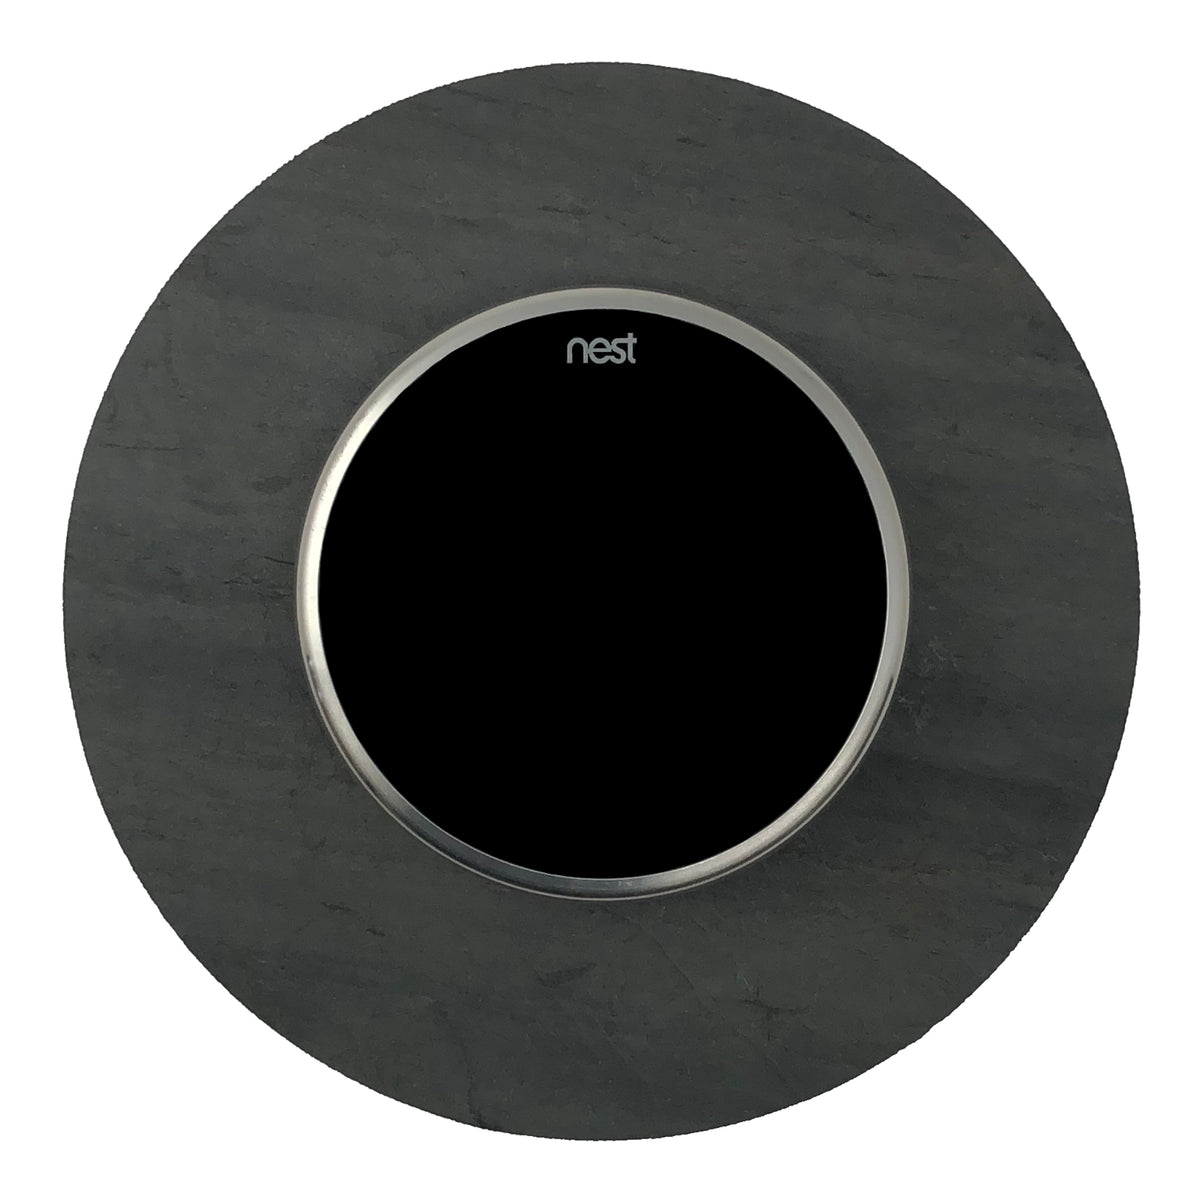 Nest Wall Plate 6 Inches Round Black Slate Stone